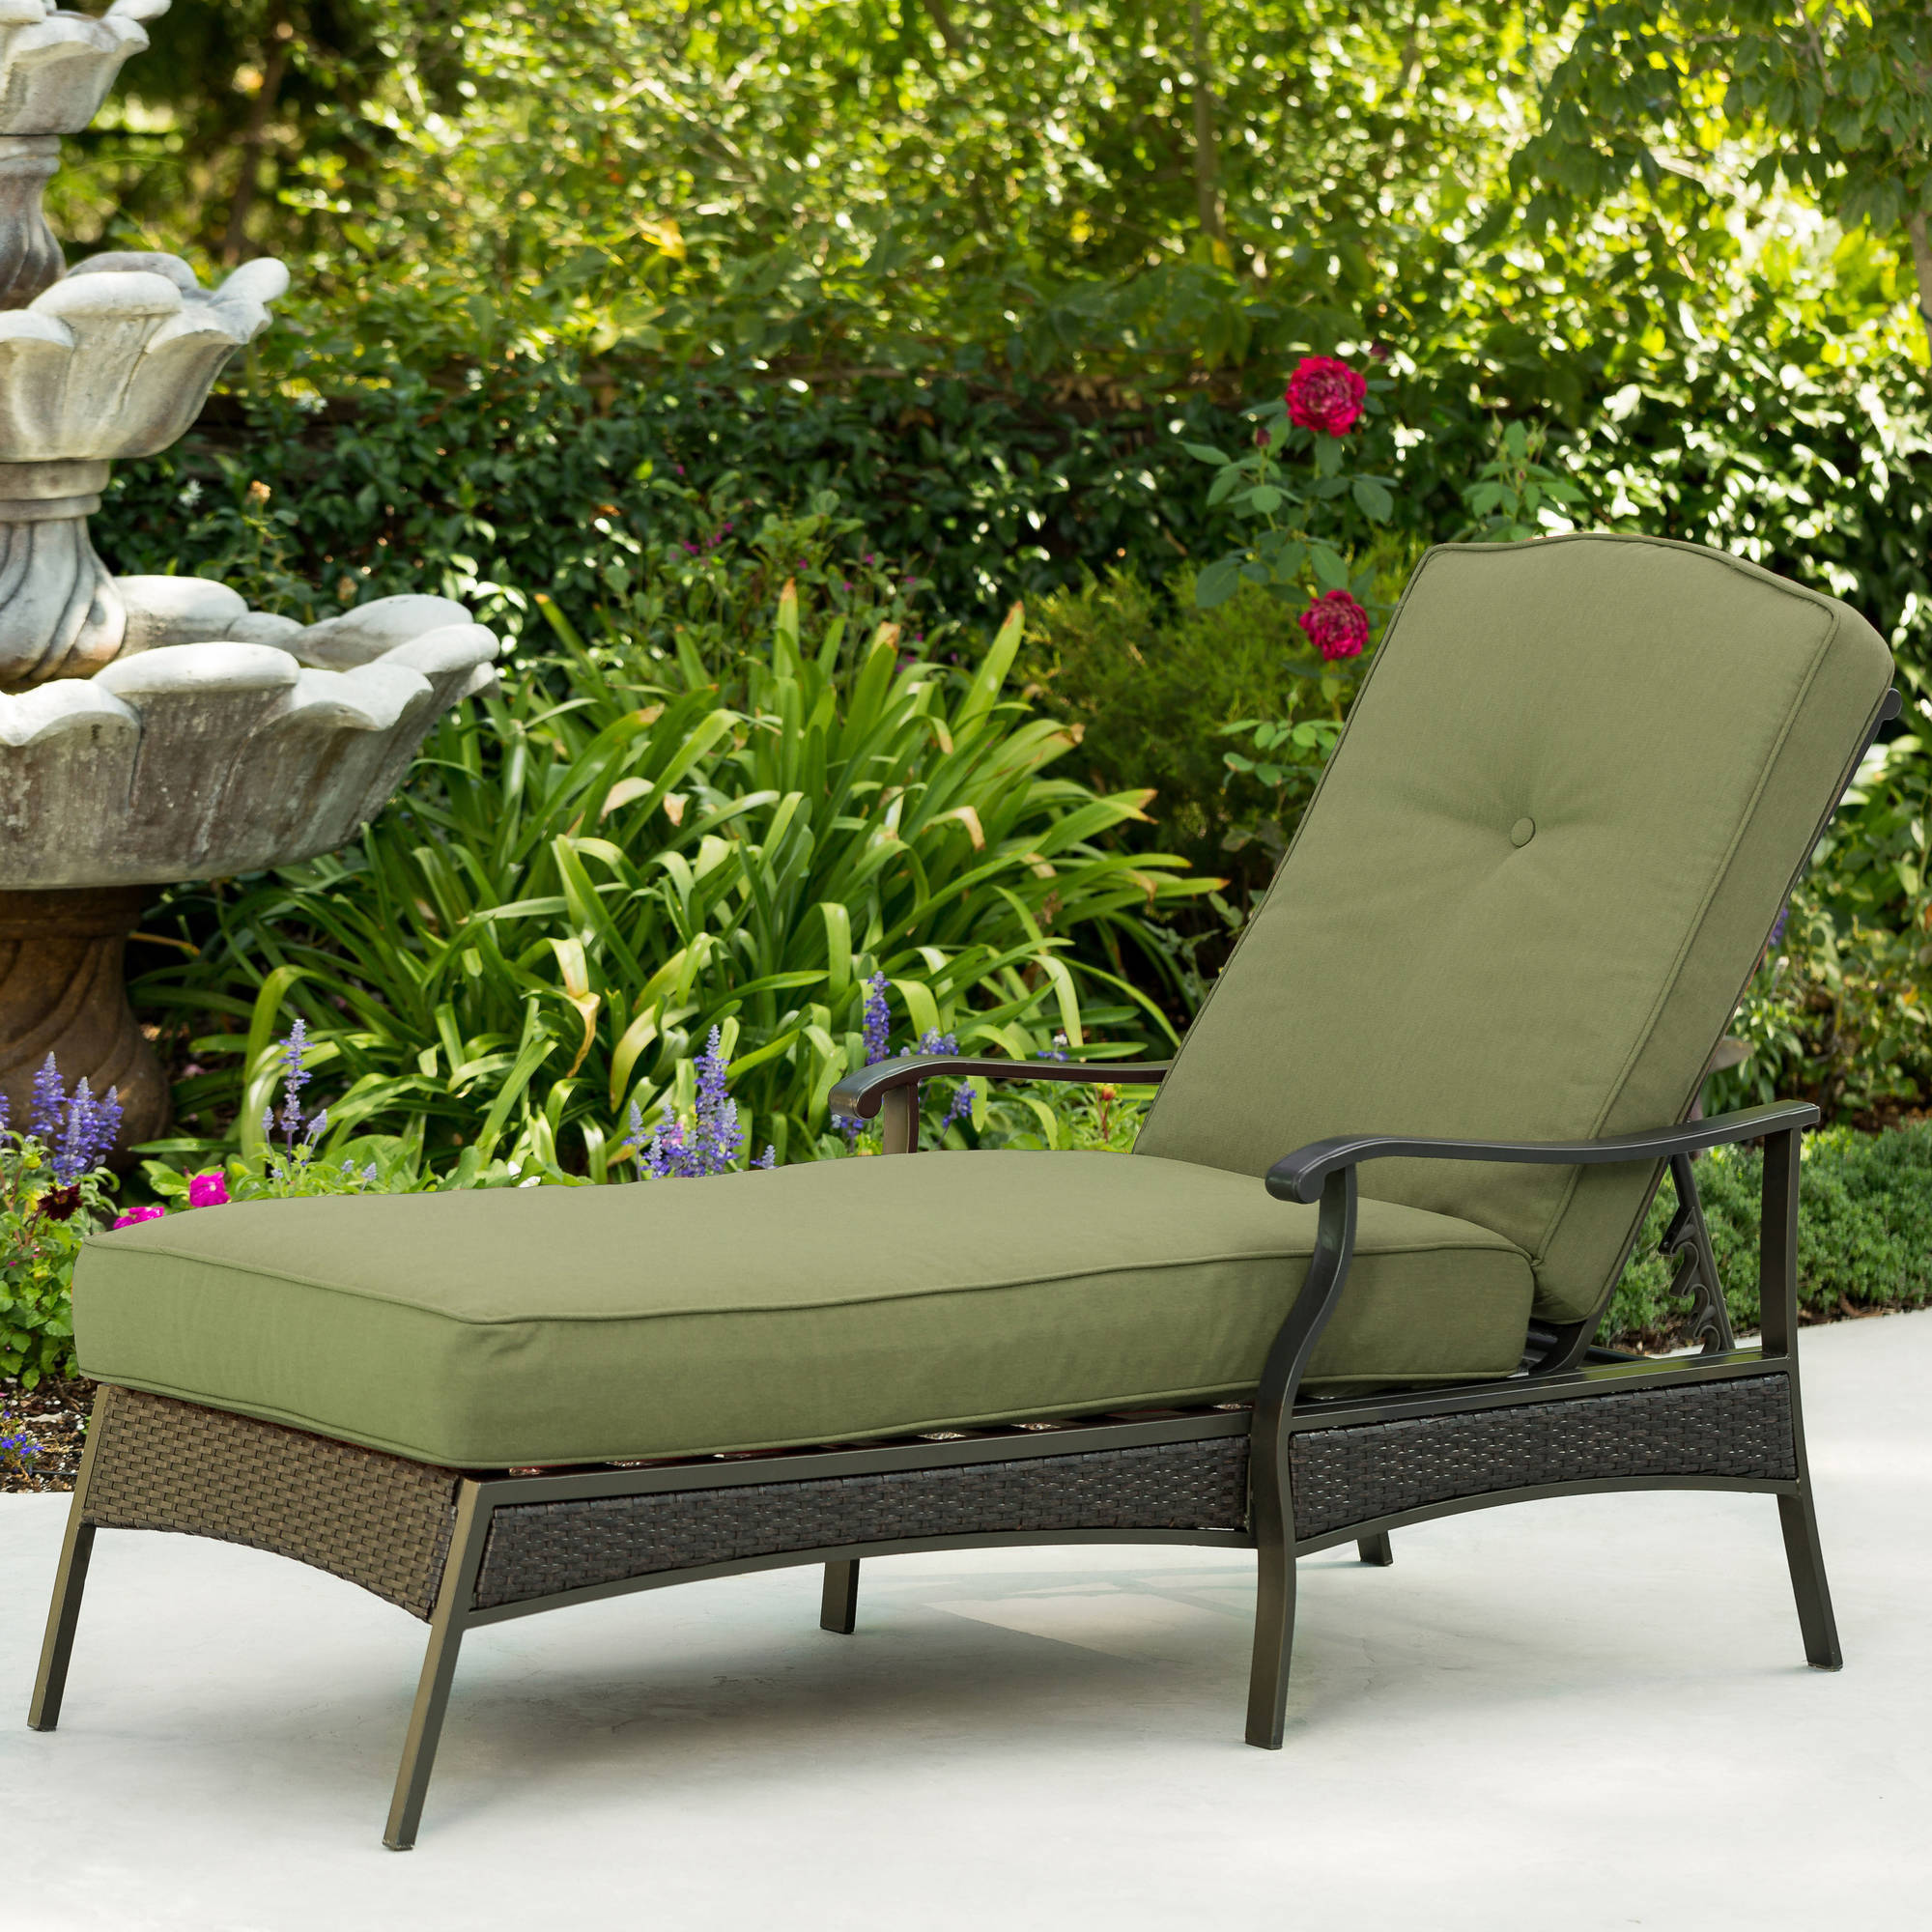 Better Homes and Gardens Providence Outdoor Chaise Lounge, Green